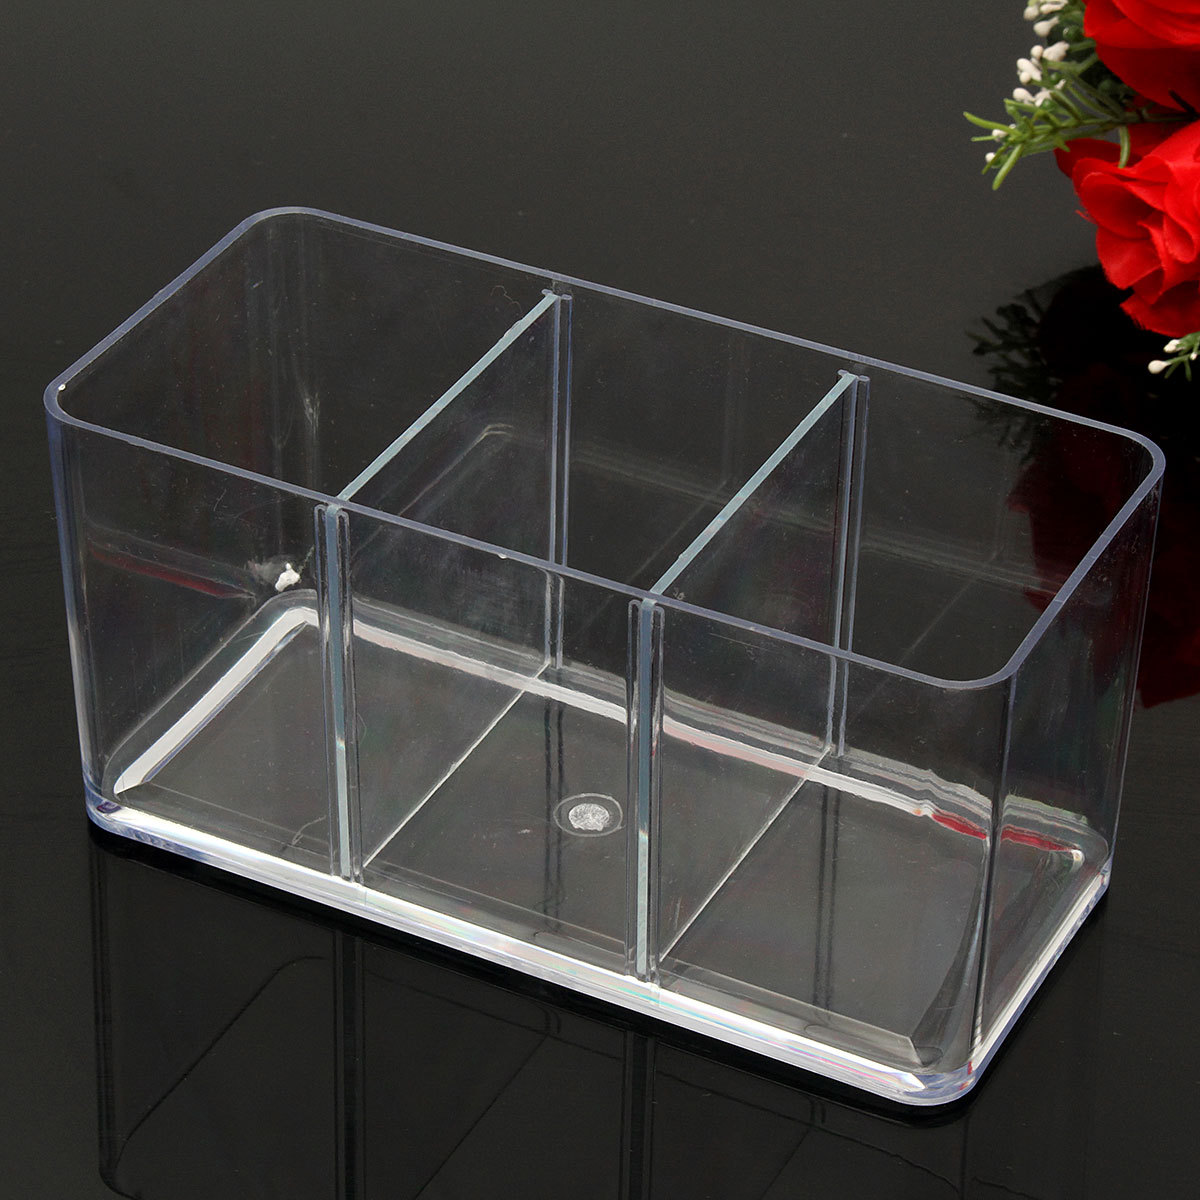 Acrylic tank three way fighting betta fish display case for How to build an acrylic fish tank